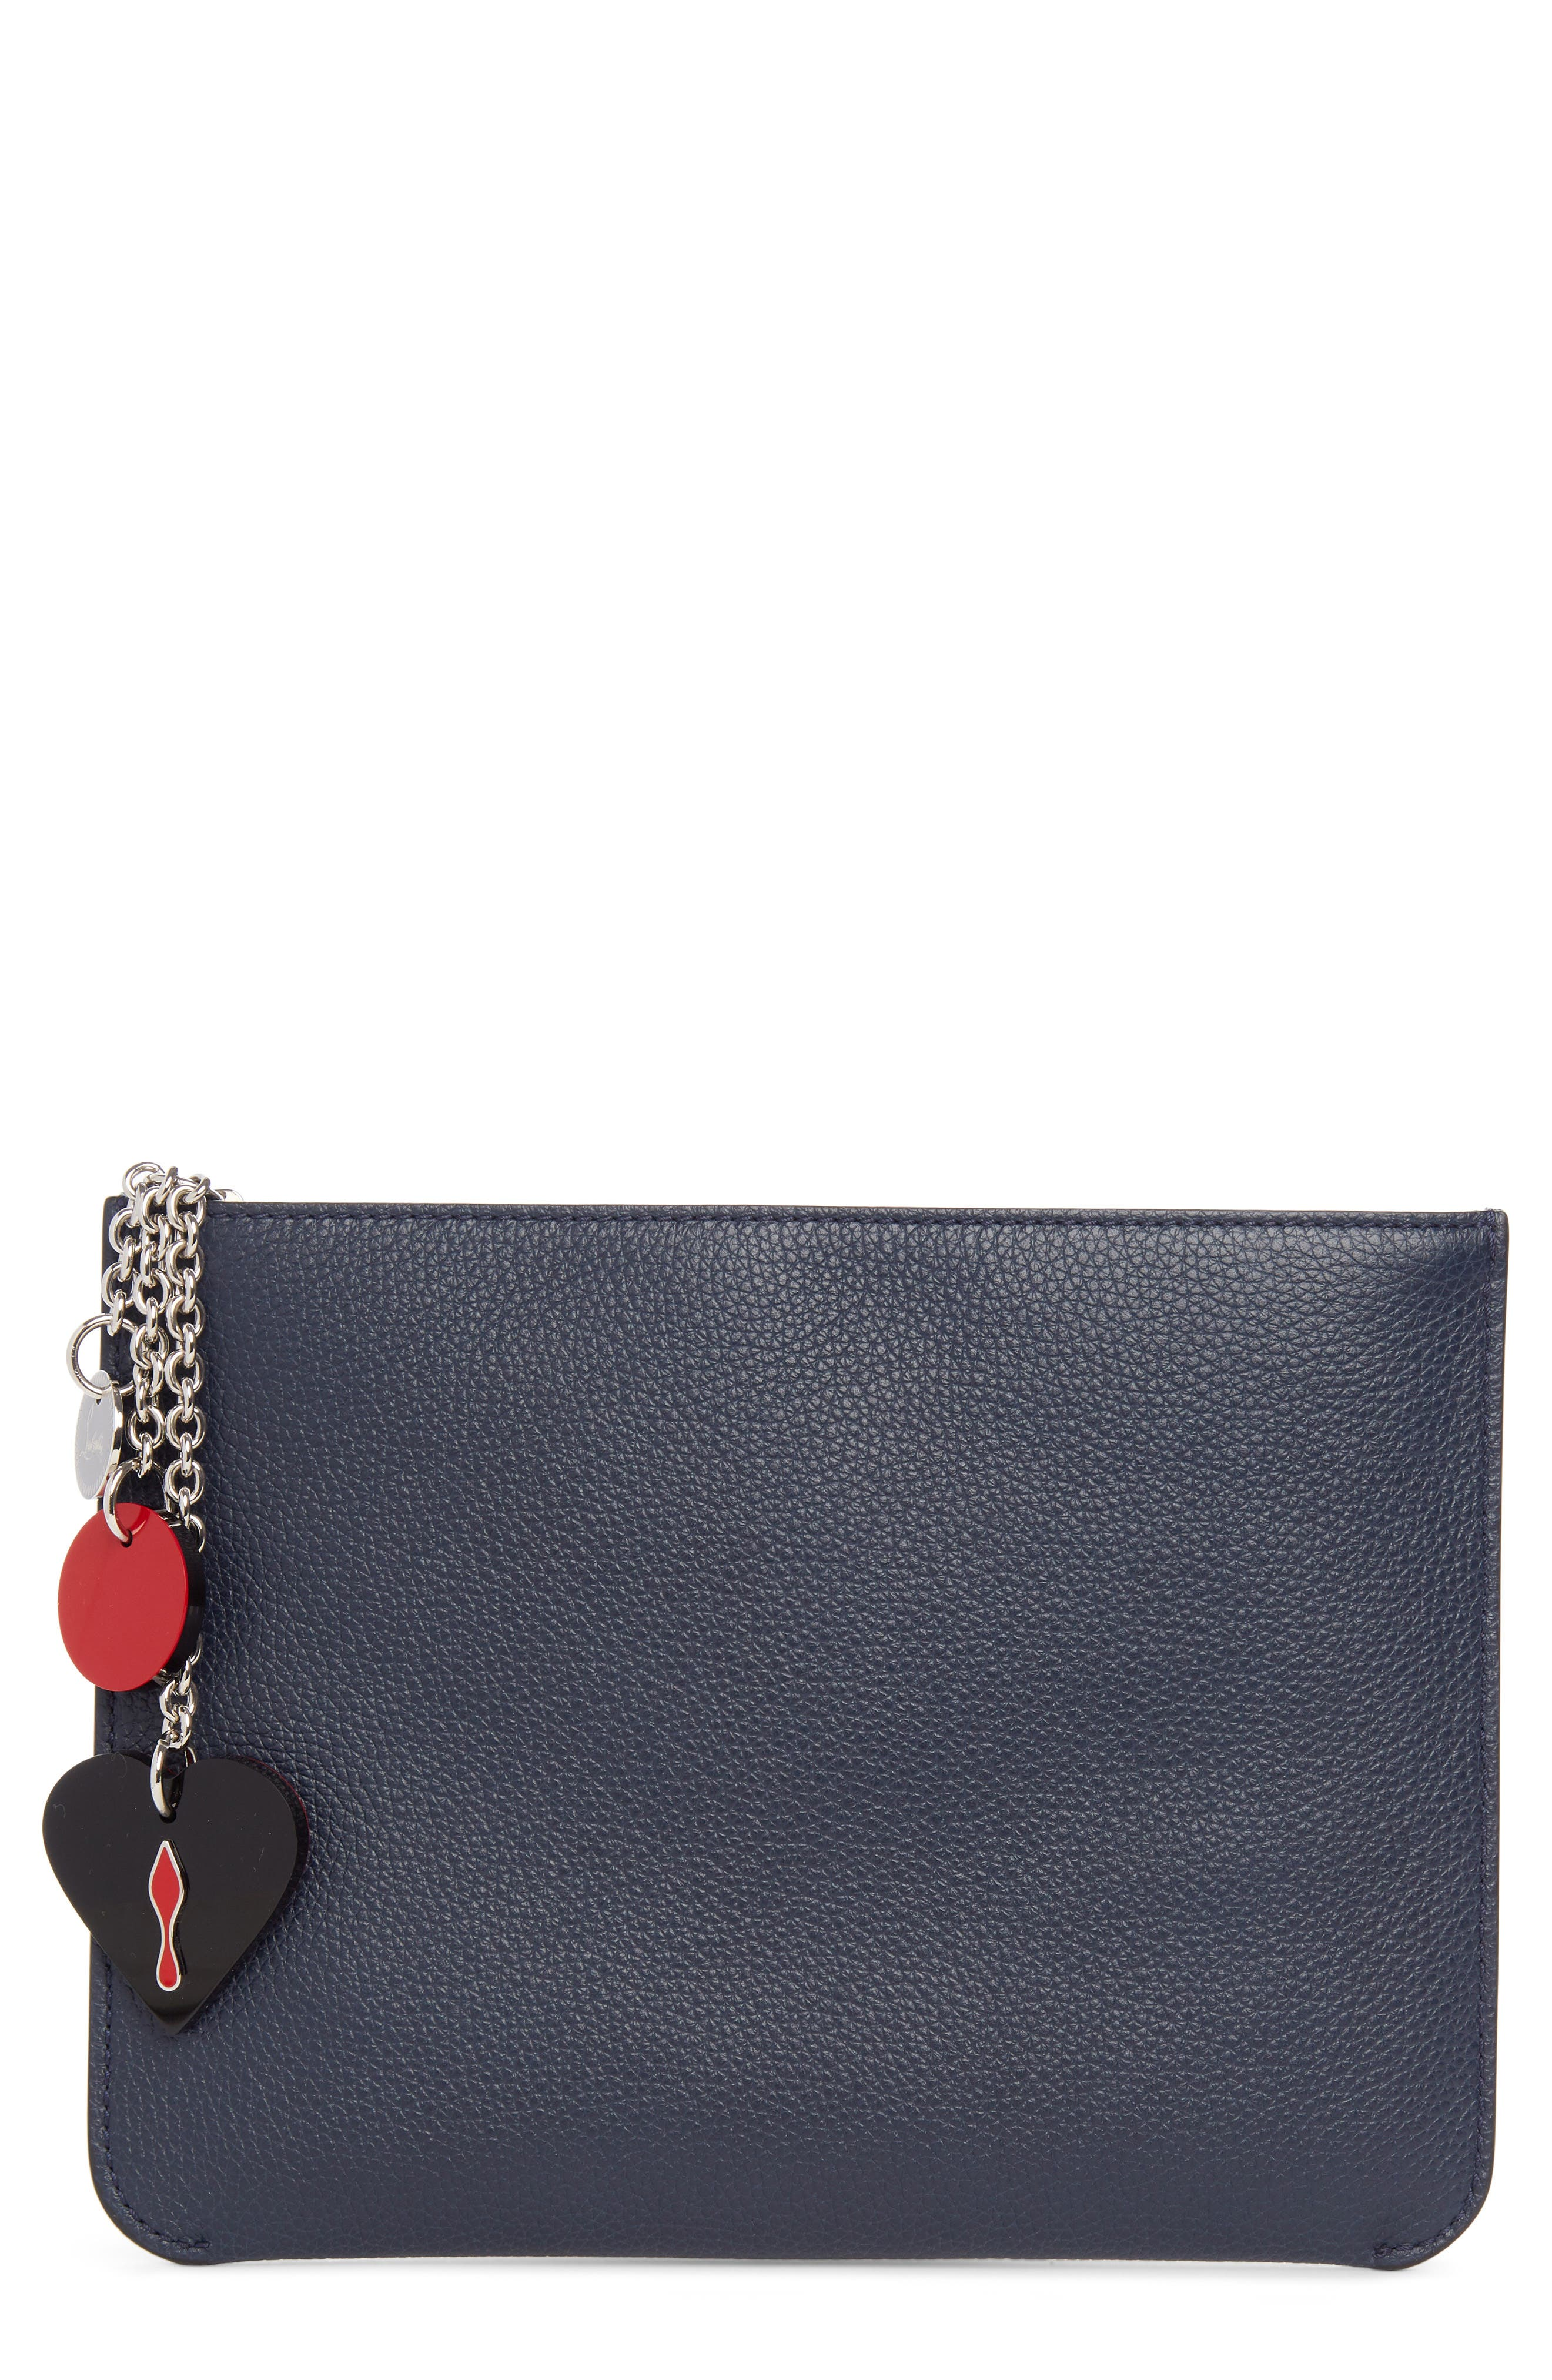 Christian Louboutin Loubicute Leather Pouch with Charms